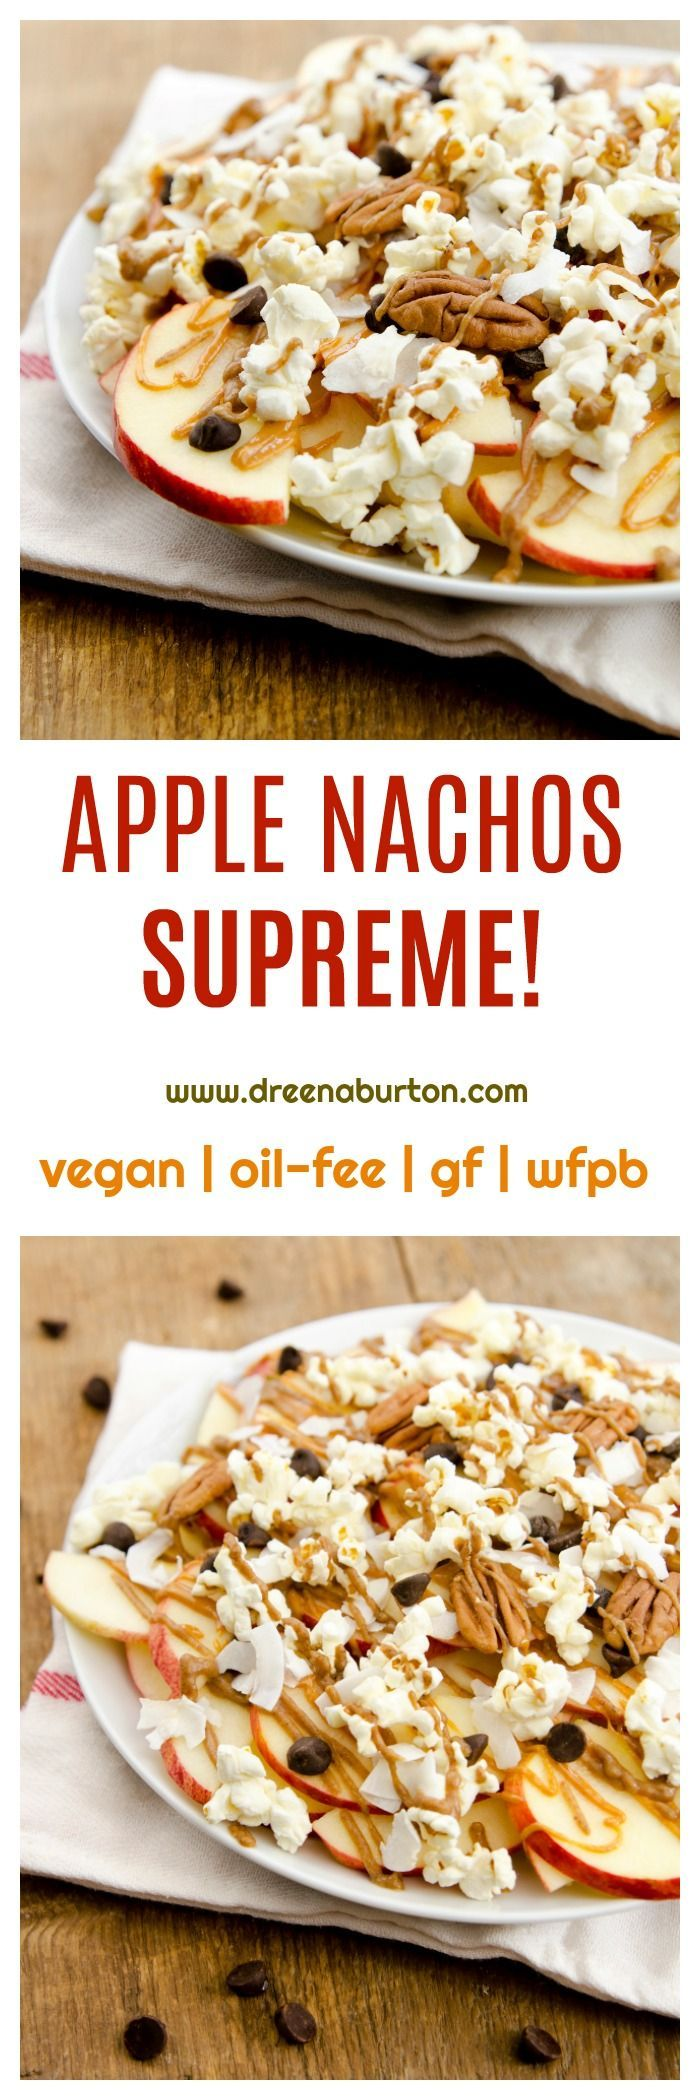 Apple Nachos Supreme! (vegan, gluten-free, wfpb, oil-free)